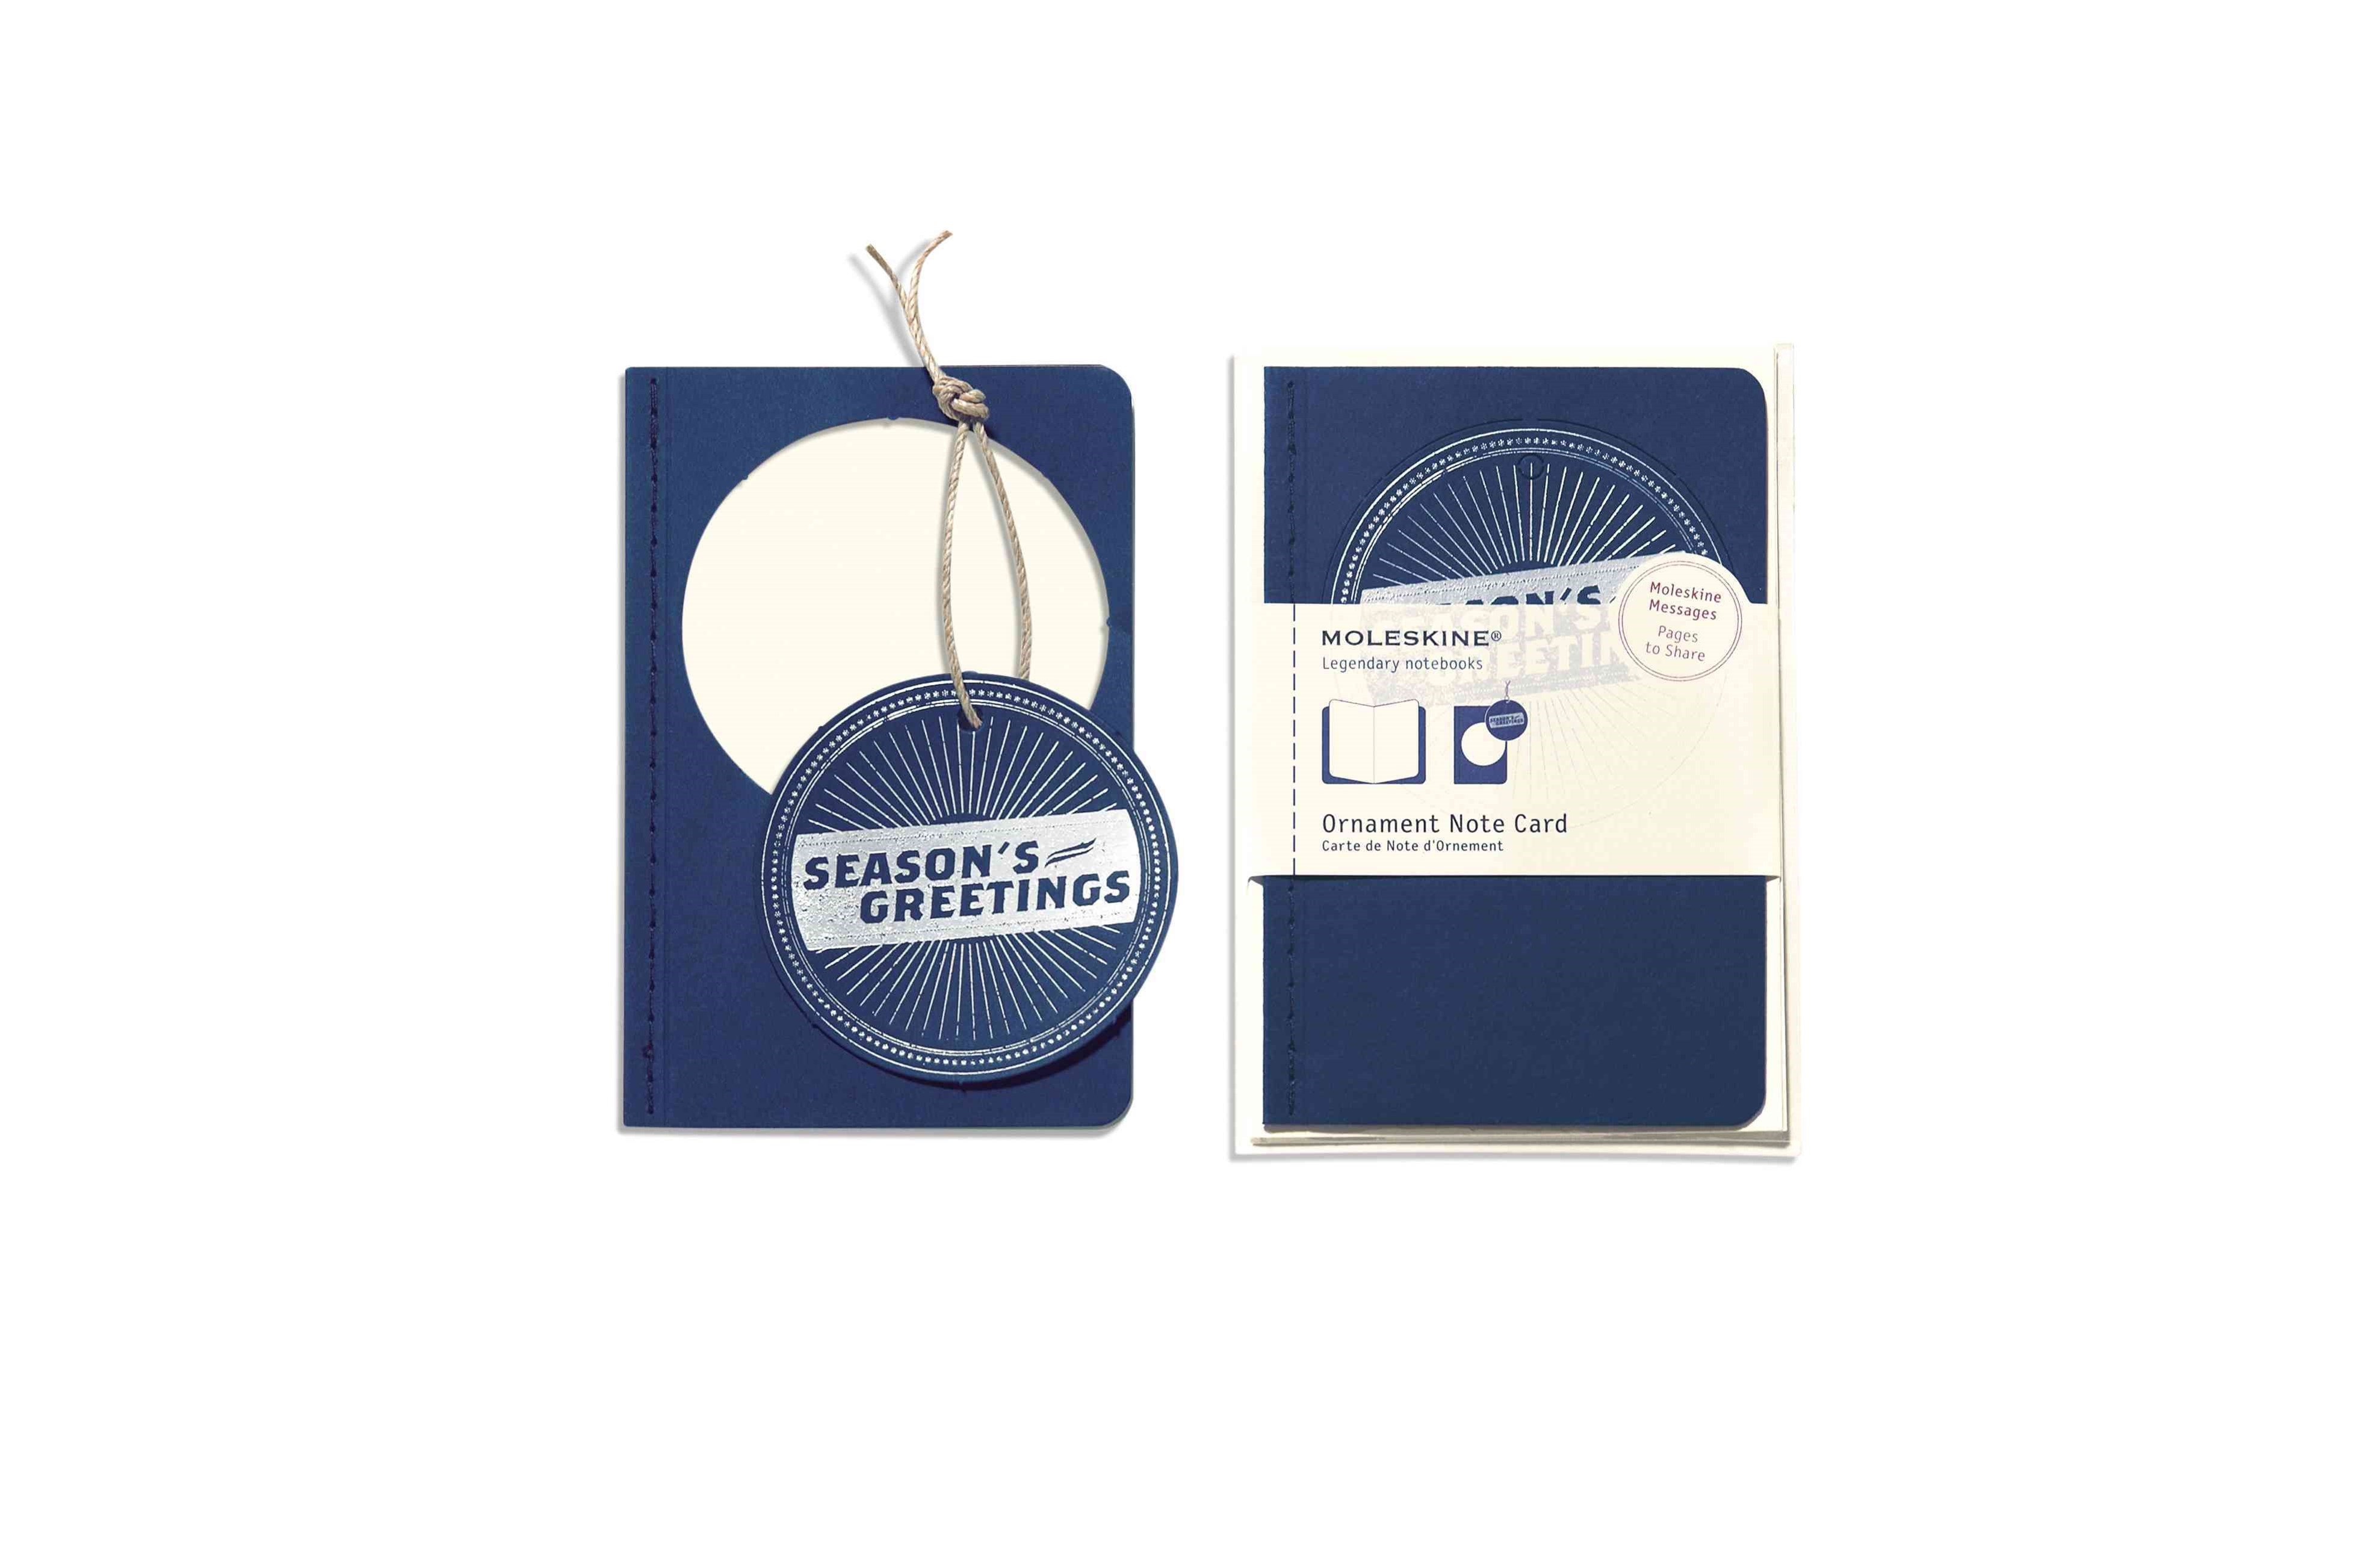 Moleskine Ornament Card Pocket - Season's Greetings